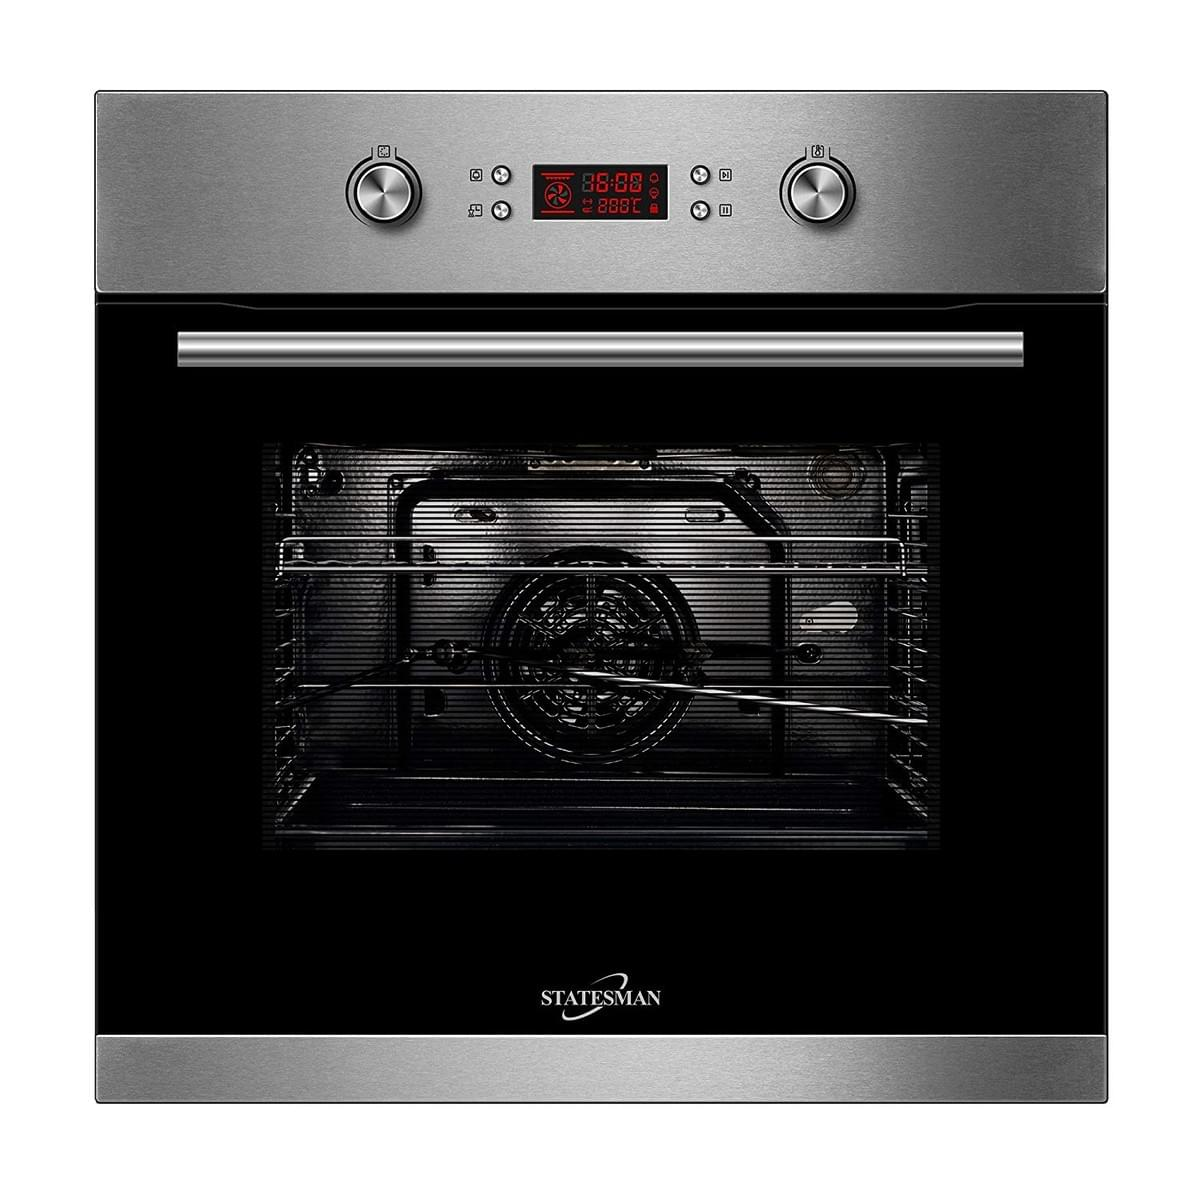 Statesman integral ovens in stock at M&G Energy